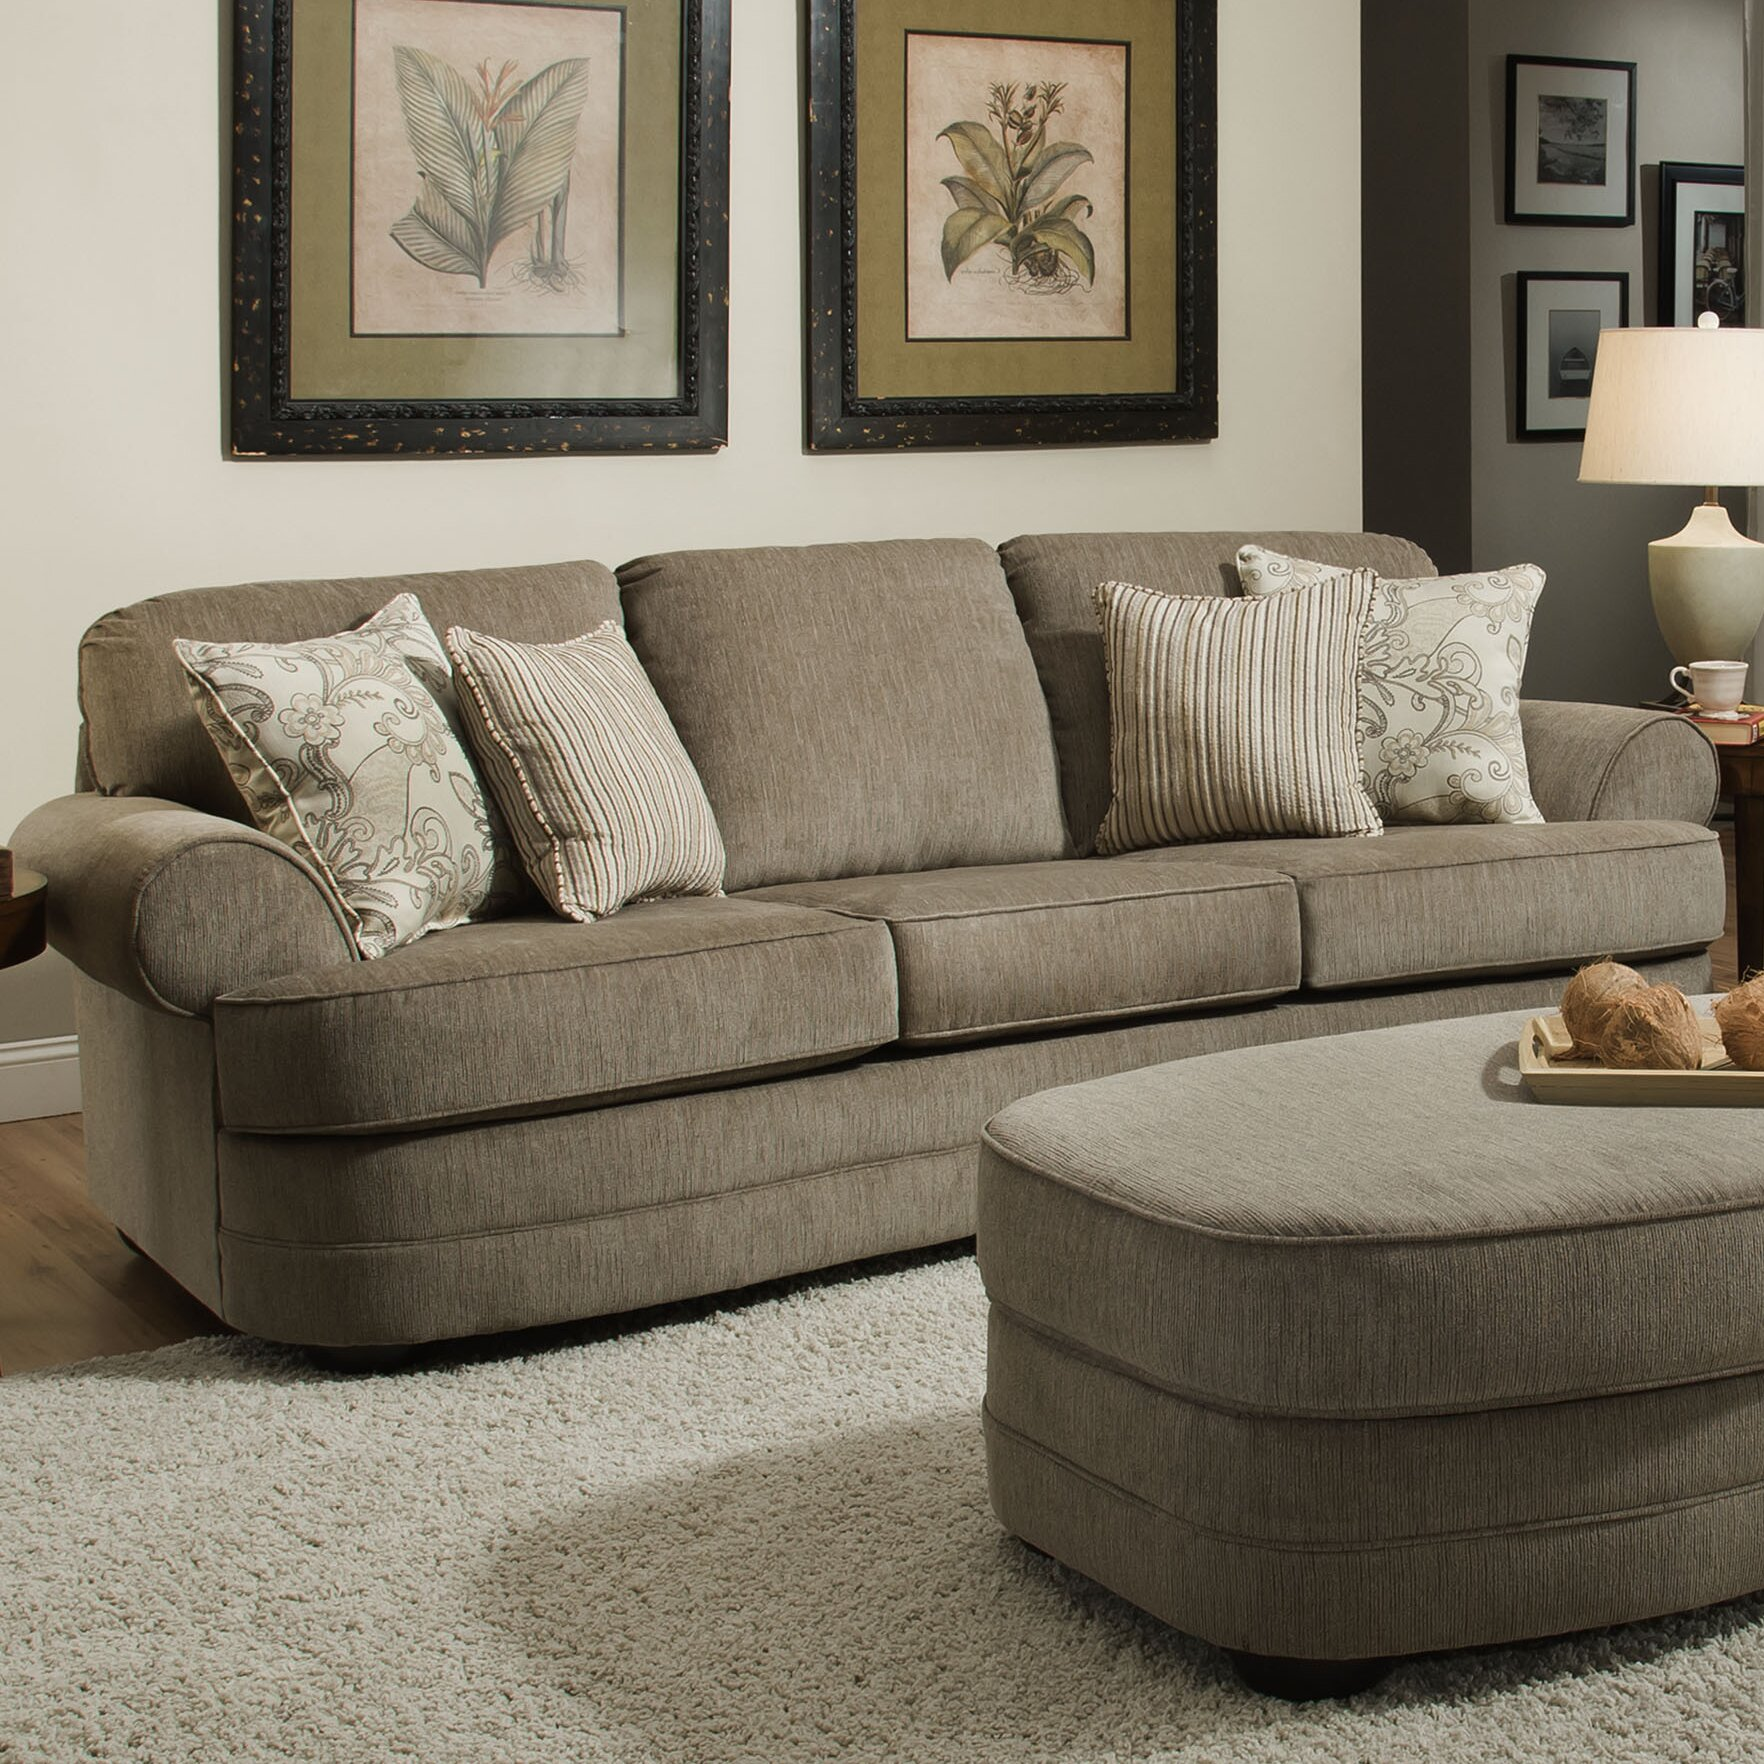 Simmons Beautyrest Sofa Bed Good Simmons Sofa Bed With Simmons